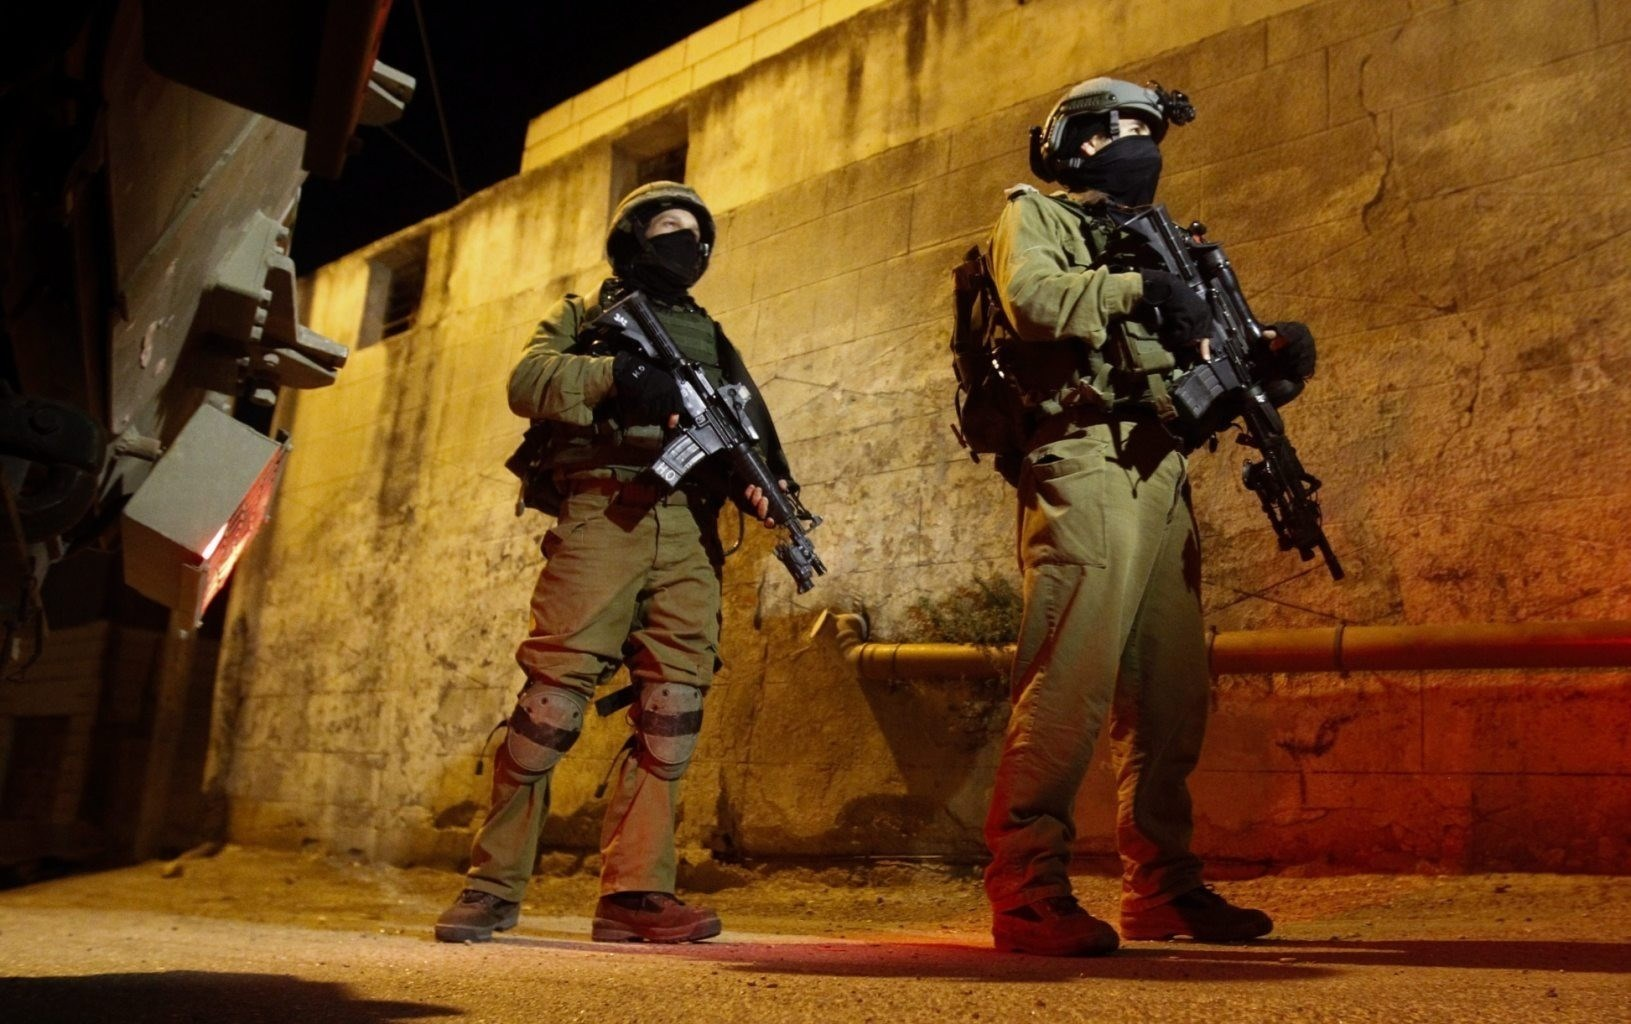 Israeli media declared that neither the Shin Bet, the occupation police, nor anybody had any tangible intelligence regarding detainees